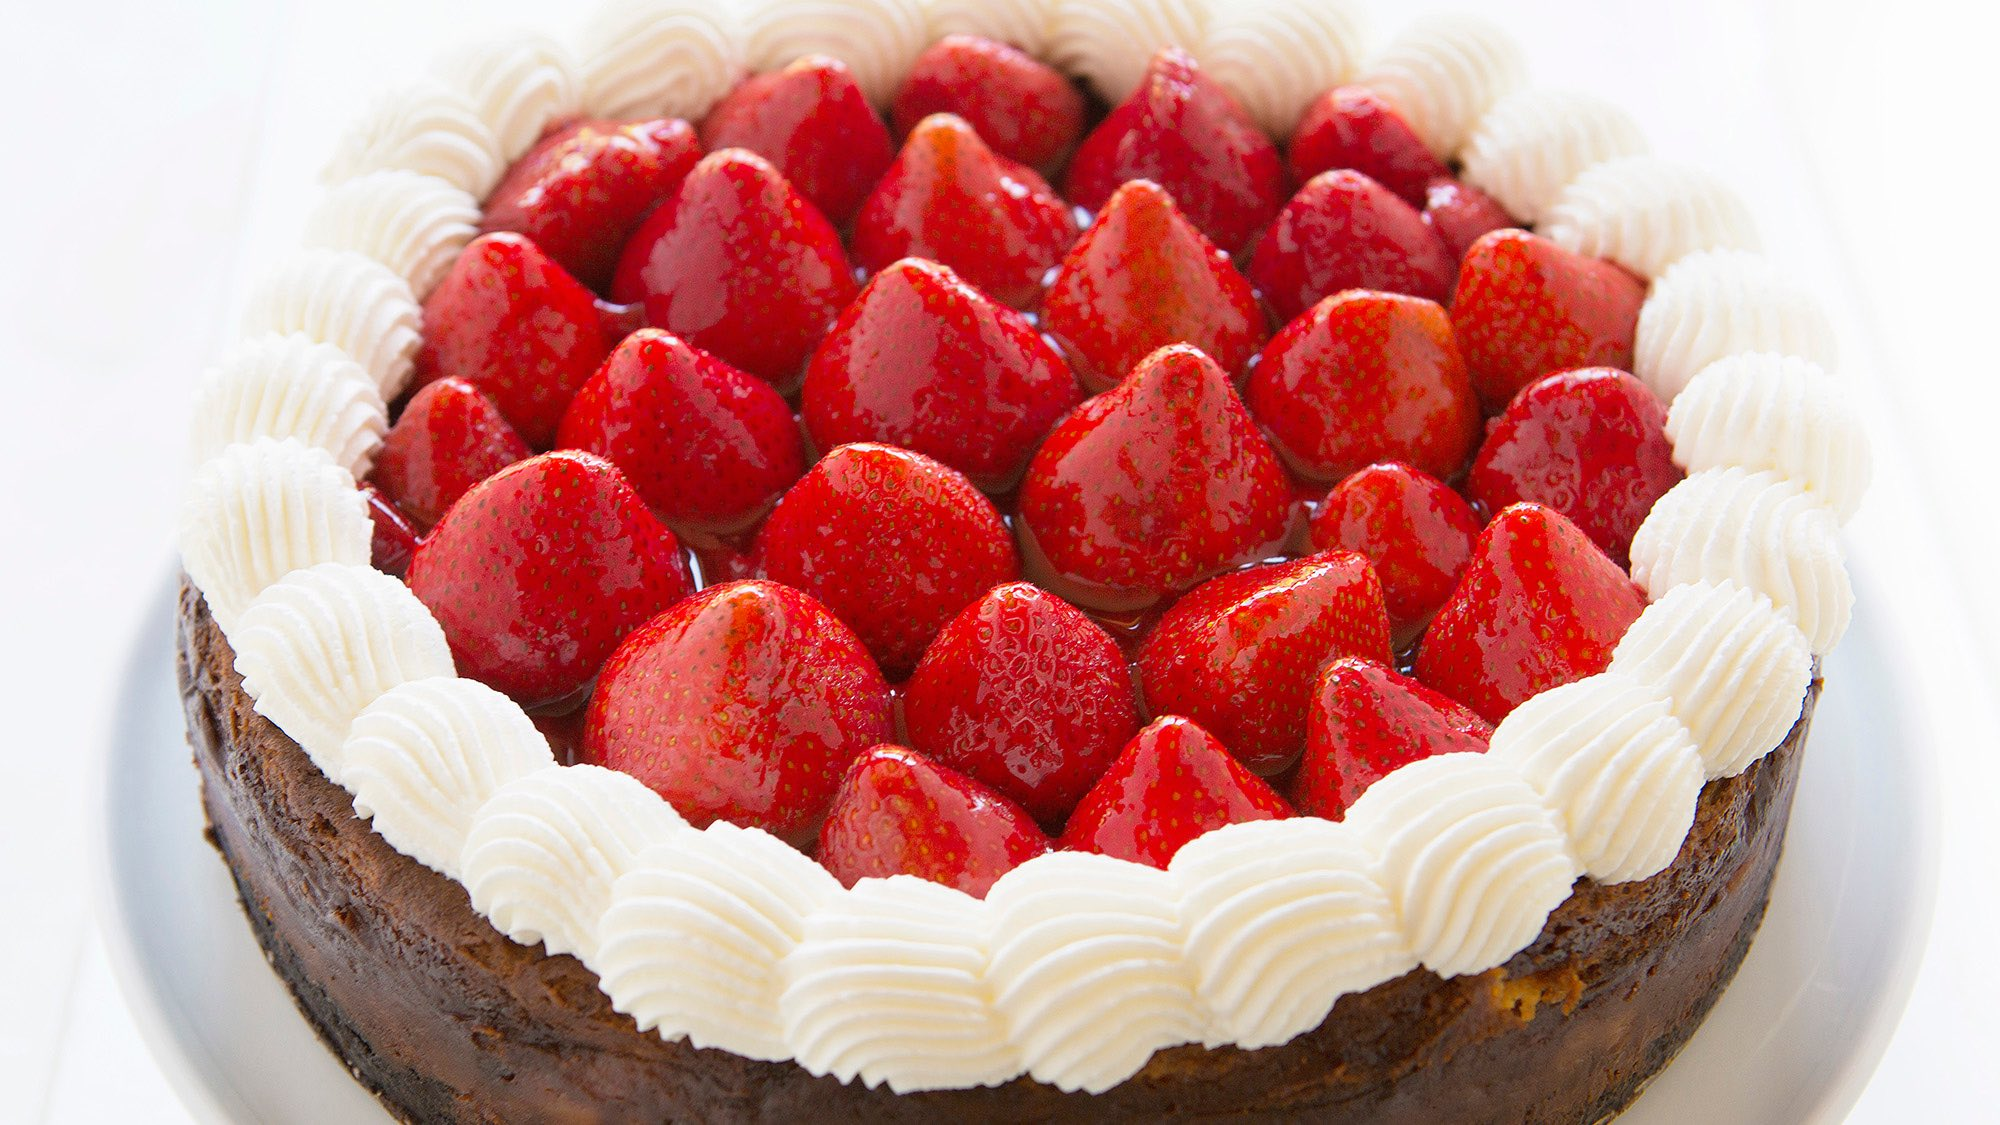 McCormick Strawberry Cheesecake